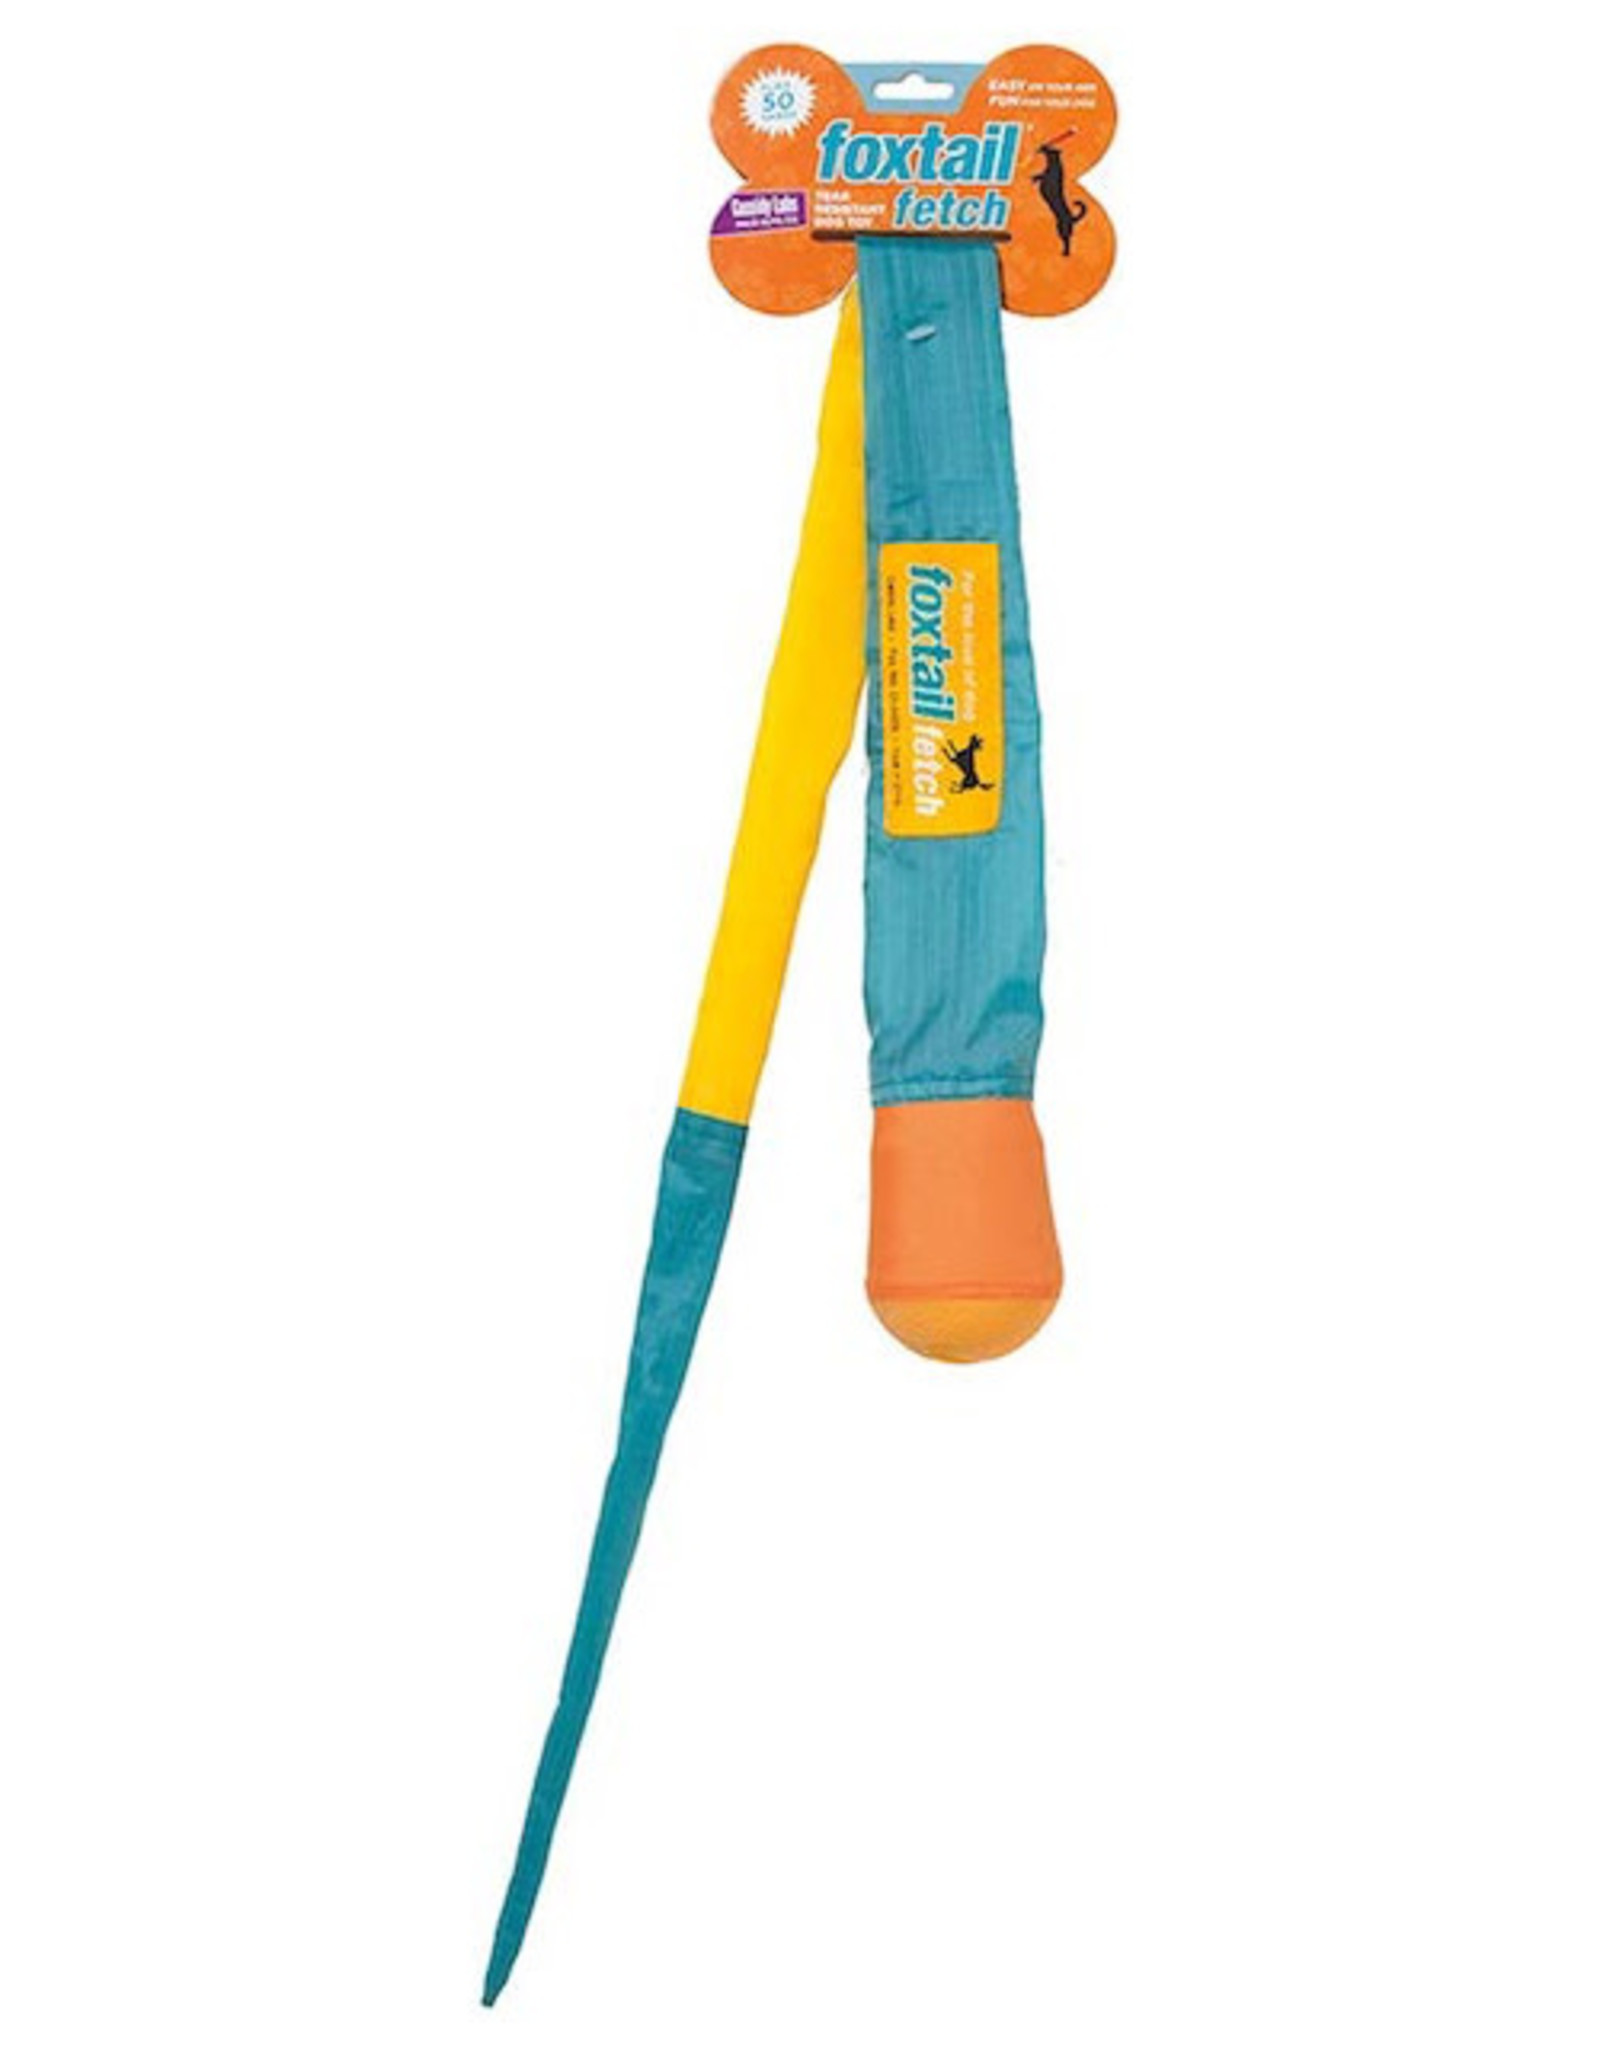 Cassidy Labs PACK FOXTAIL FETCH